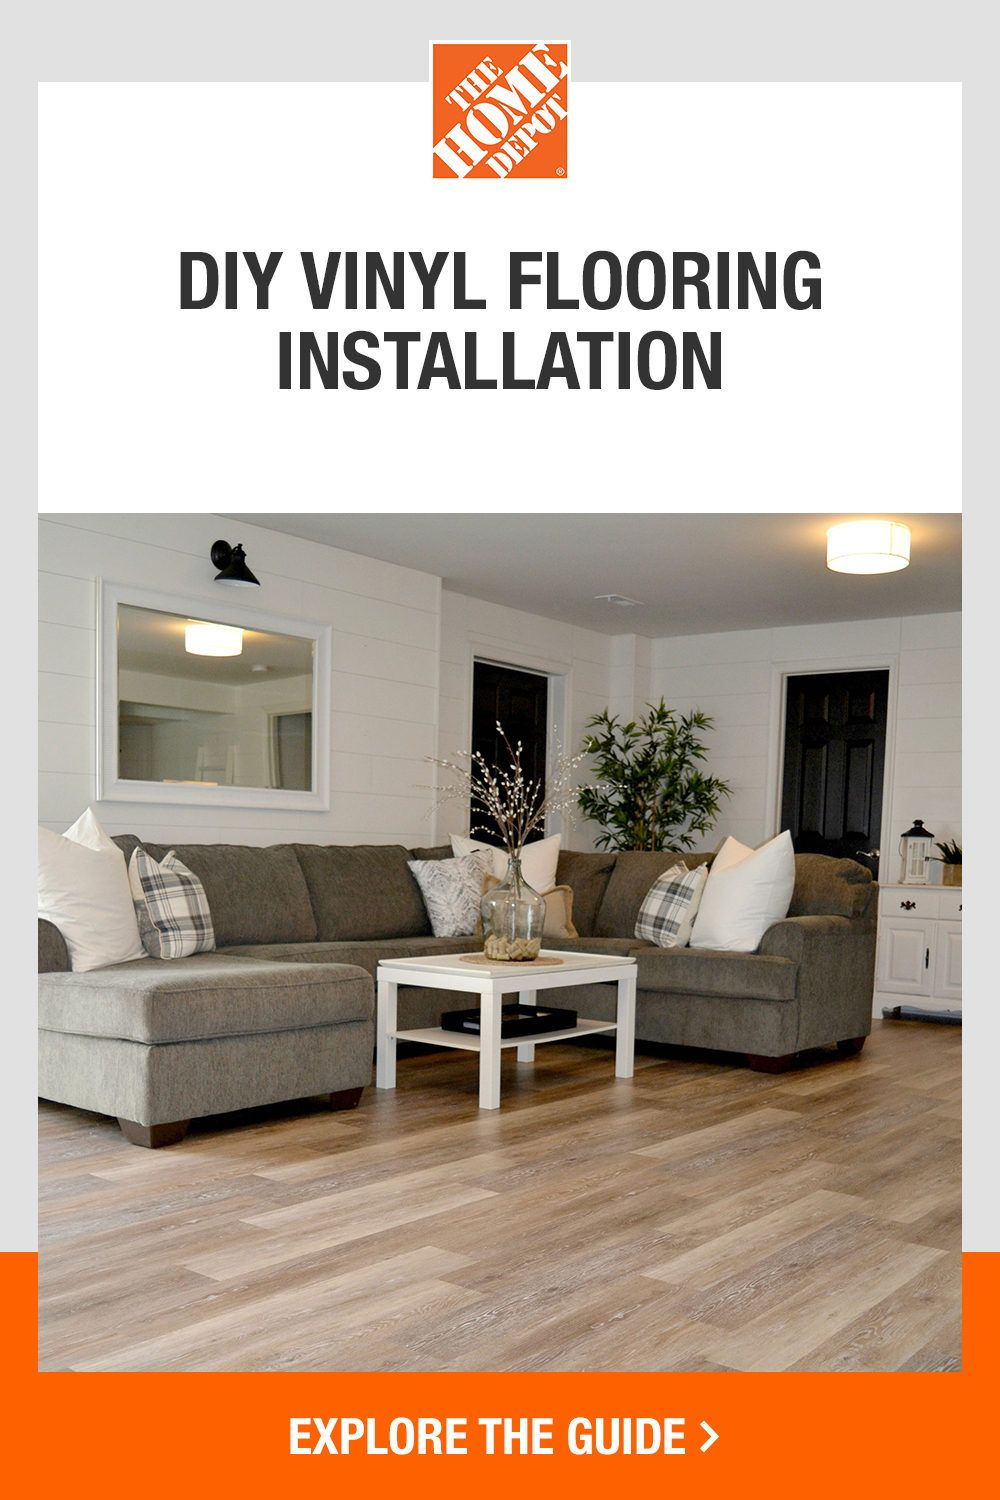 Enjoy the look of real wood with vinyl flooring from The Home Depot. Vinyl plank flooring has the visual appeal of solid hardwoods but is a fraction of the price and easy to install yourself—making it a great option for home-improvers. Click The Home Depot guide to learn the installation basics for any room of your home.